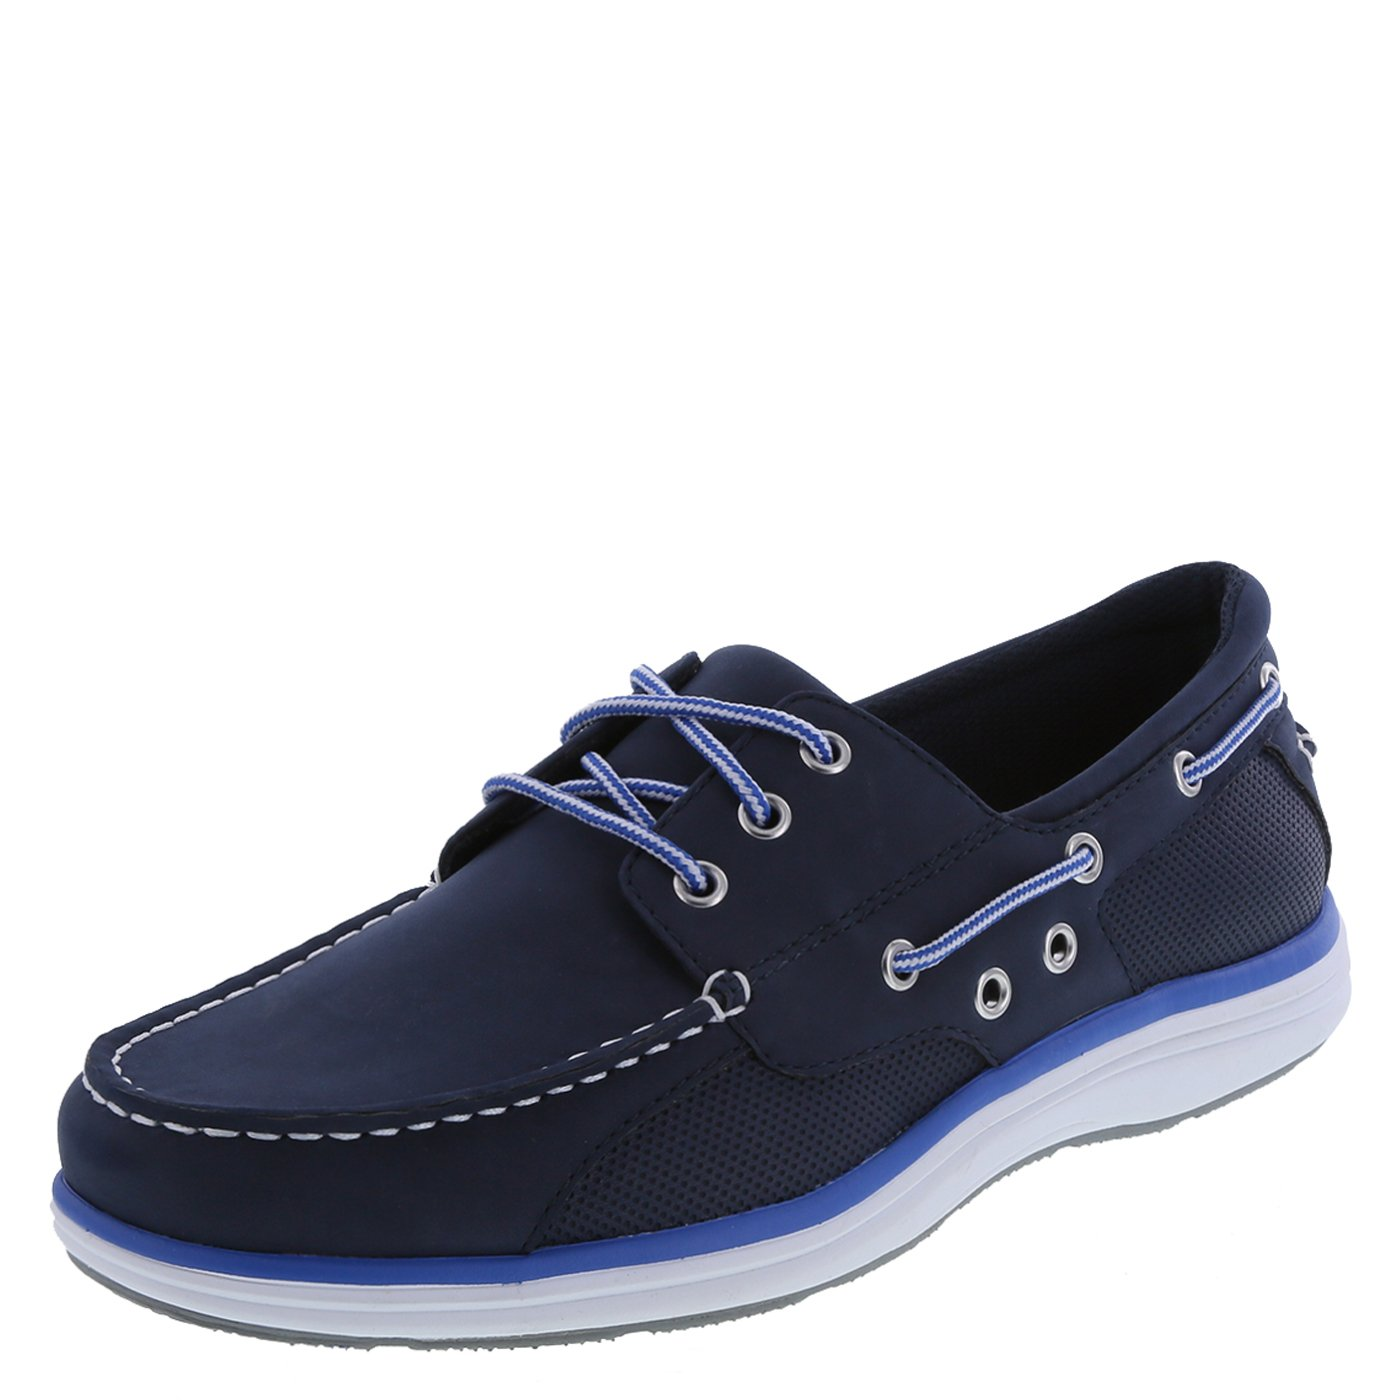 Men's Lightweight Mesh Boat Shoes-Light Navy,9